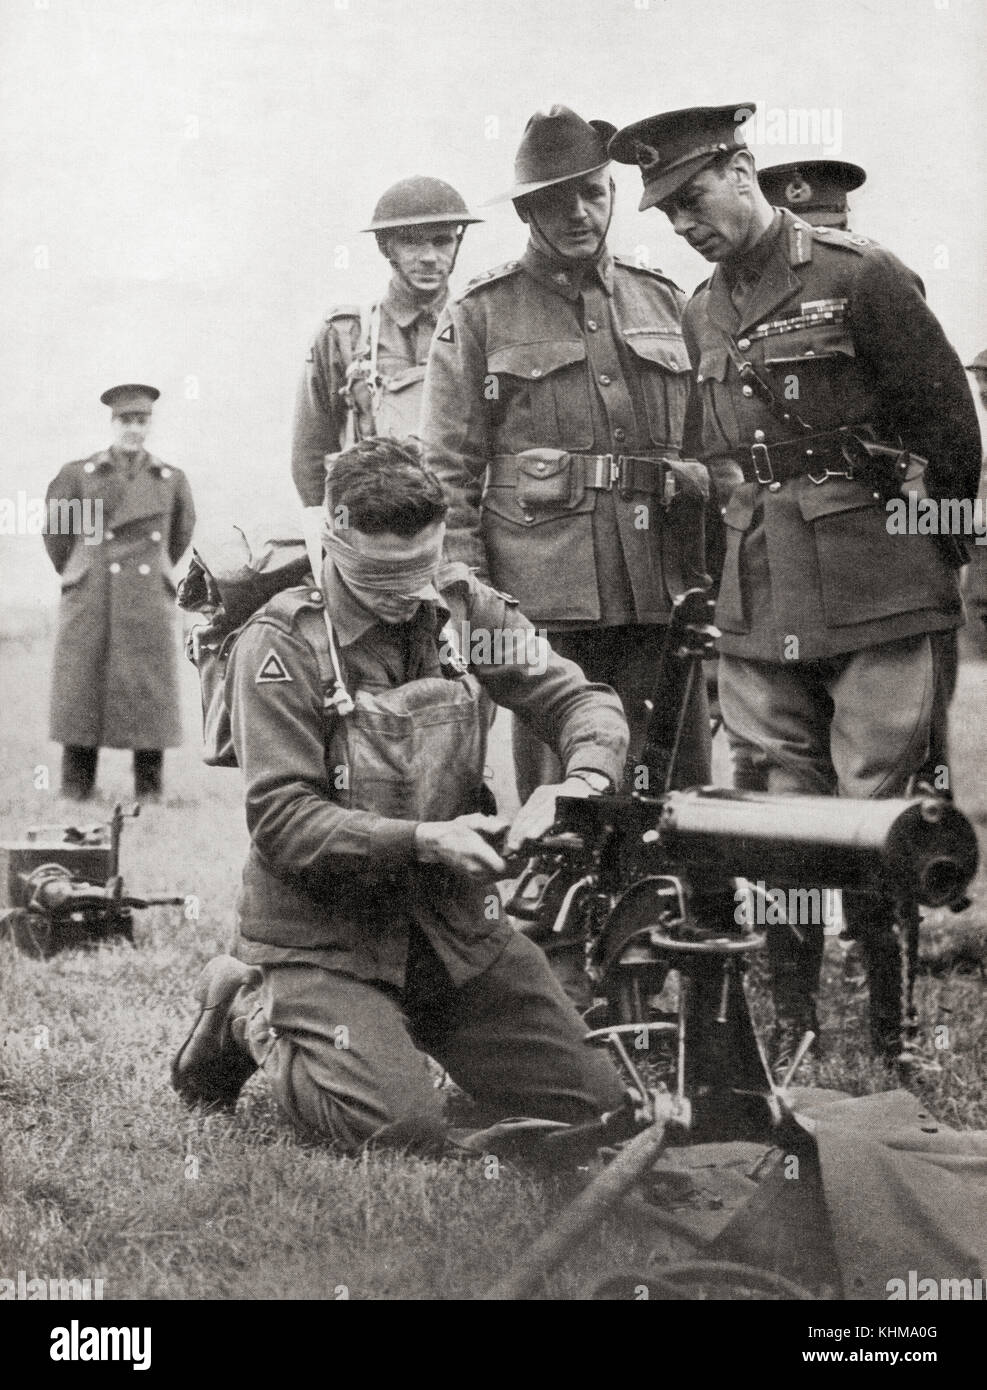 King George VI watching a blindfolded Australian soldier assemble a machine gun, 1940.  George VI, 1895 – 1952. - Stock Image